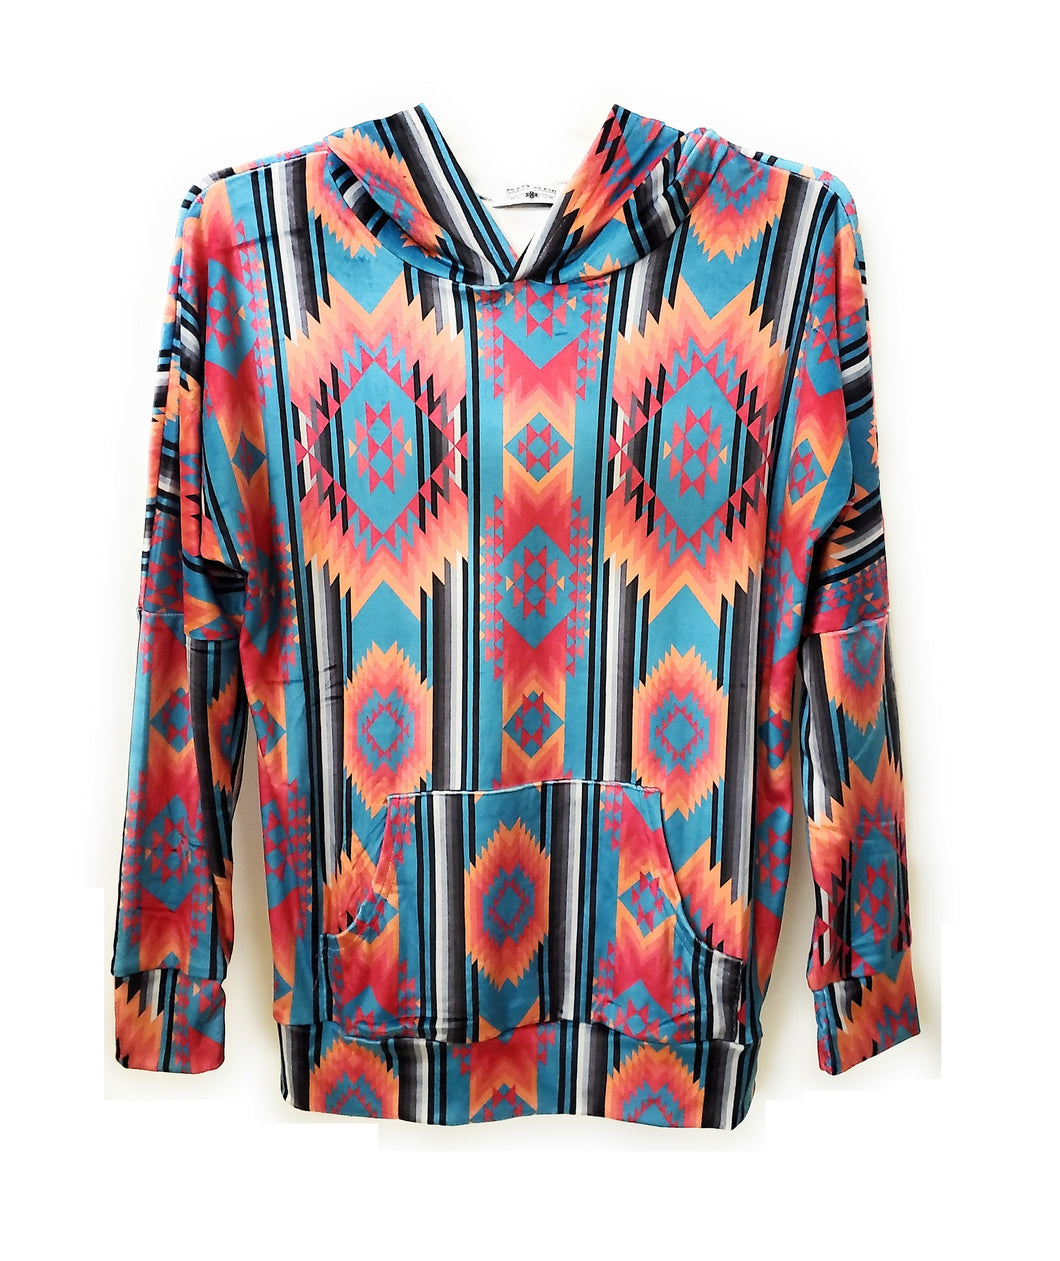 Crazy Train Aztec Lightweight Jacket Soft Serape Hoodie Coat Pull Over Turquoise Blue Orange Pink